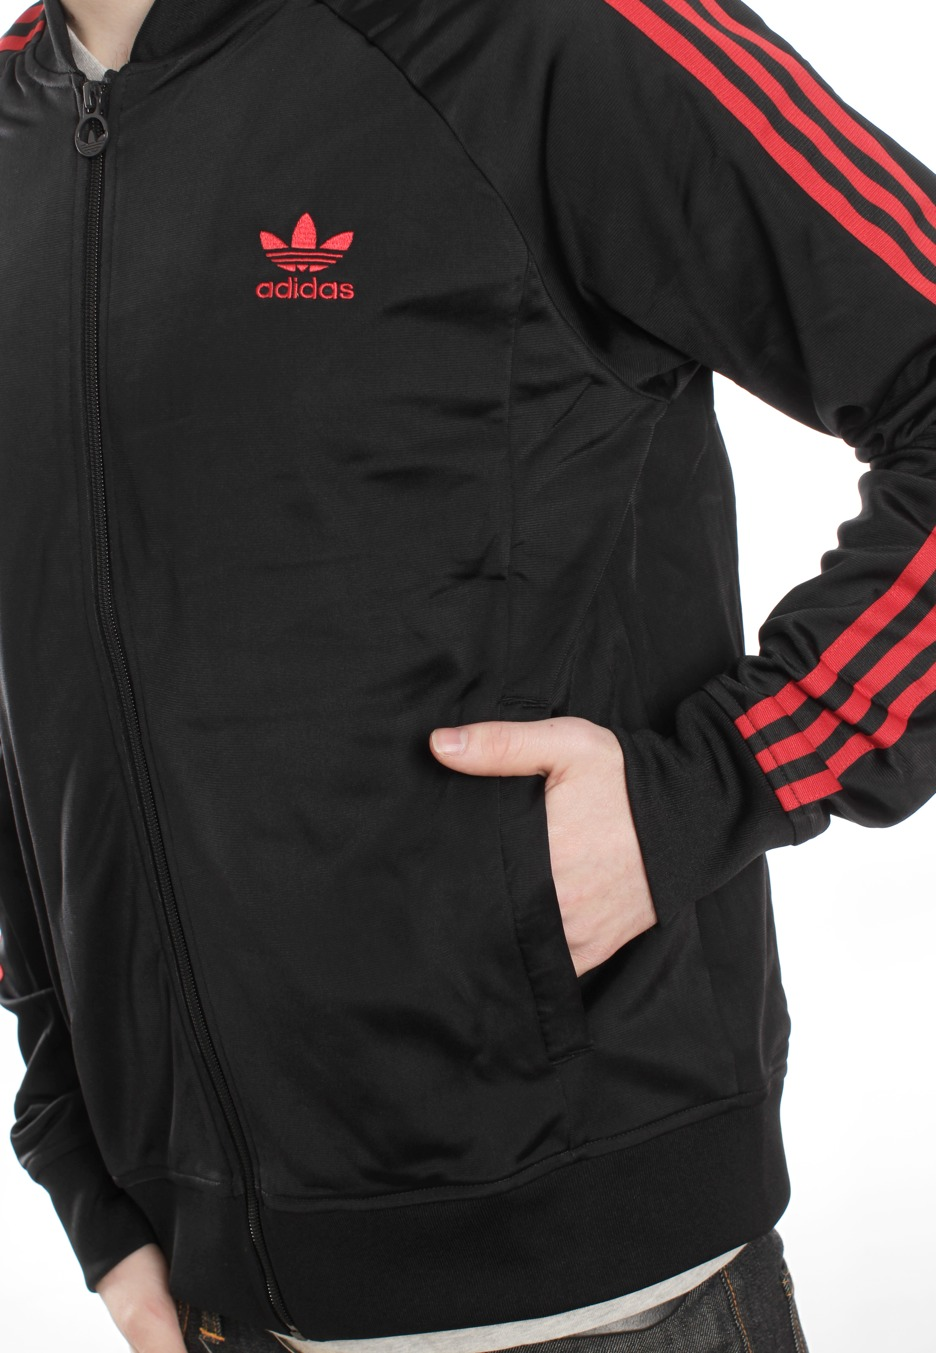 Adidas Superstar Tt Black Light Scarlet Track Jacket